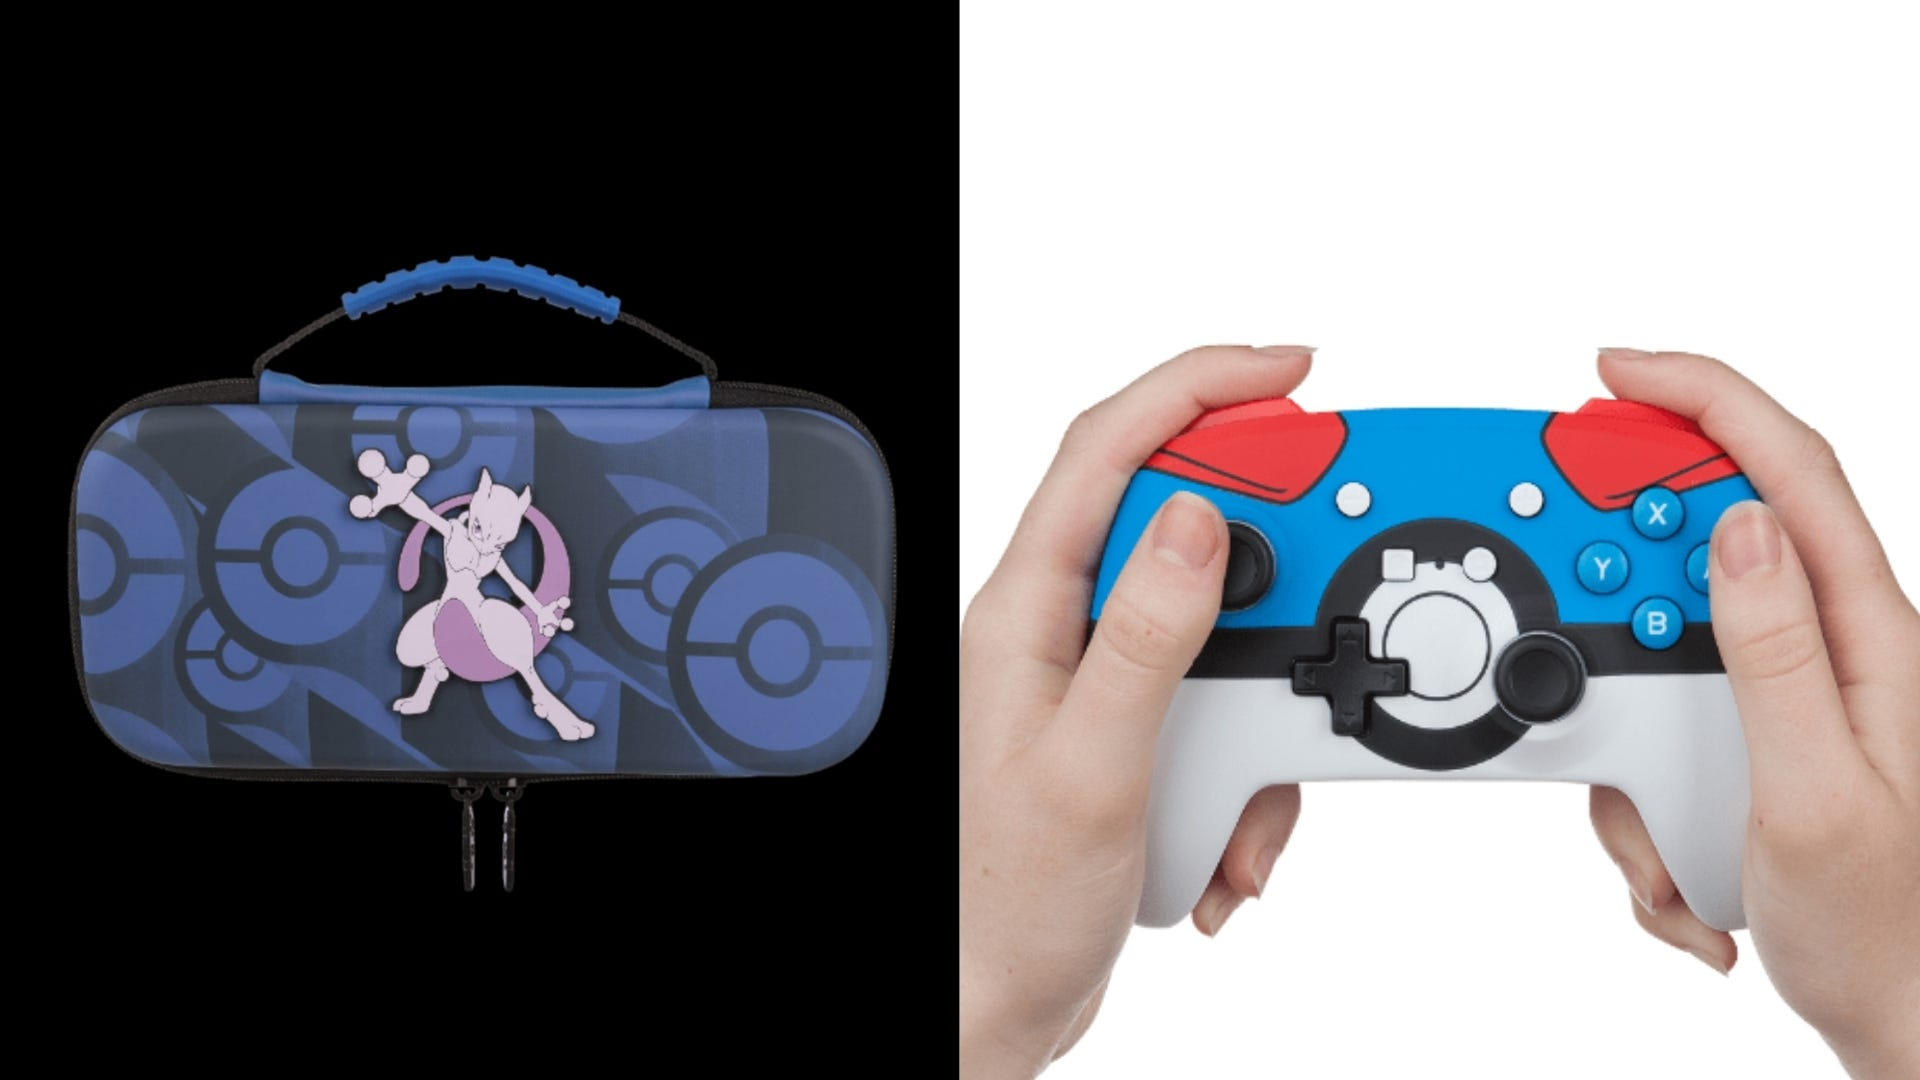 A Mewtwo Nintendo Switch case and a person holding a Poke Ball video game controller.